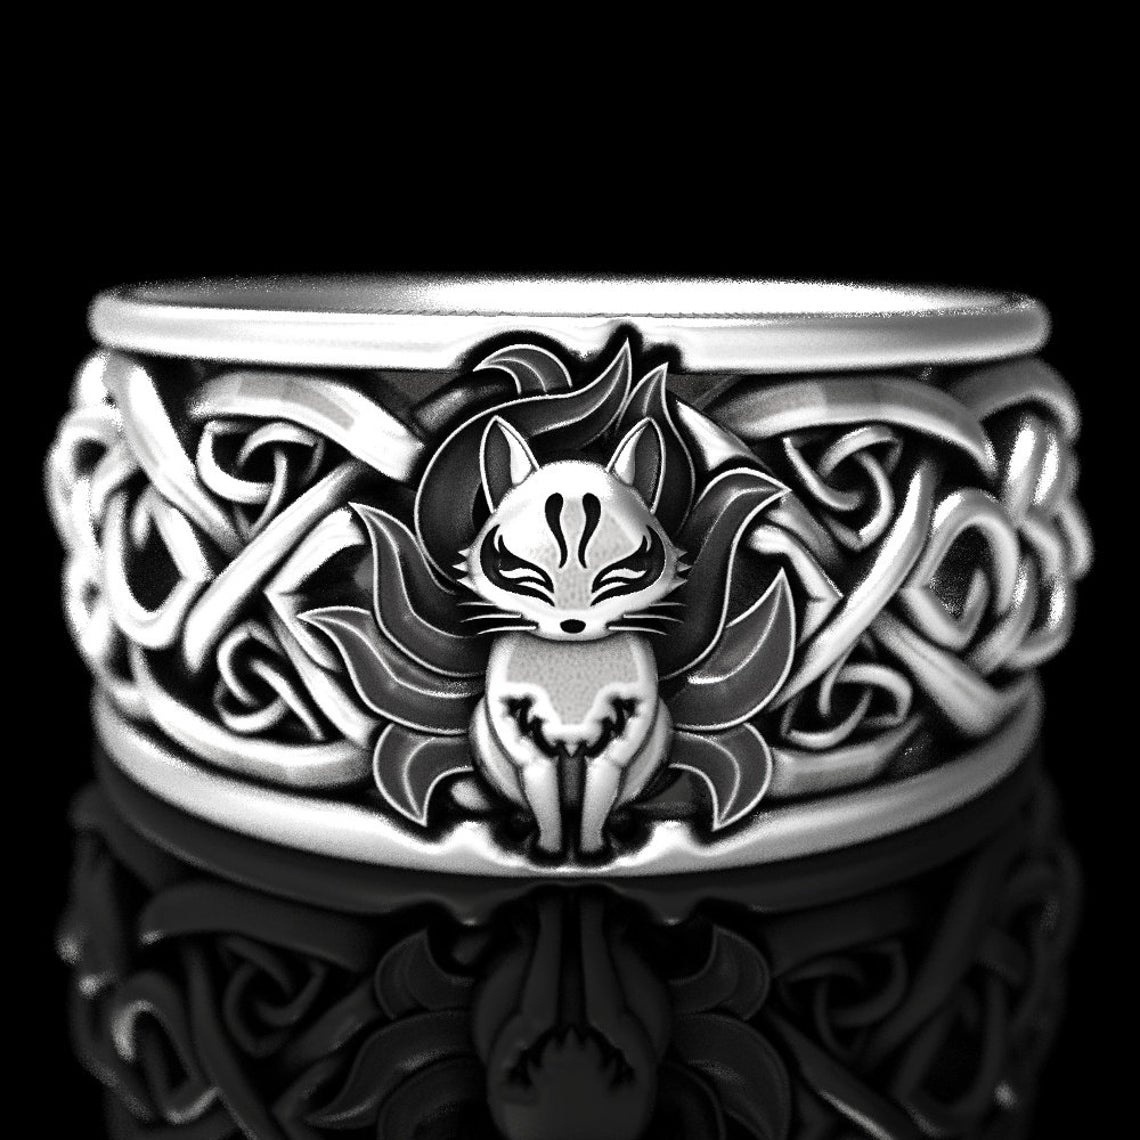 Vintage Fine Silver Color Nine Tailed Fox Ring for Women Men Steampunk Party Halloween Jewelry Gifts